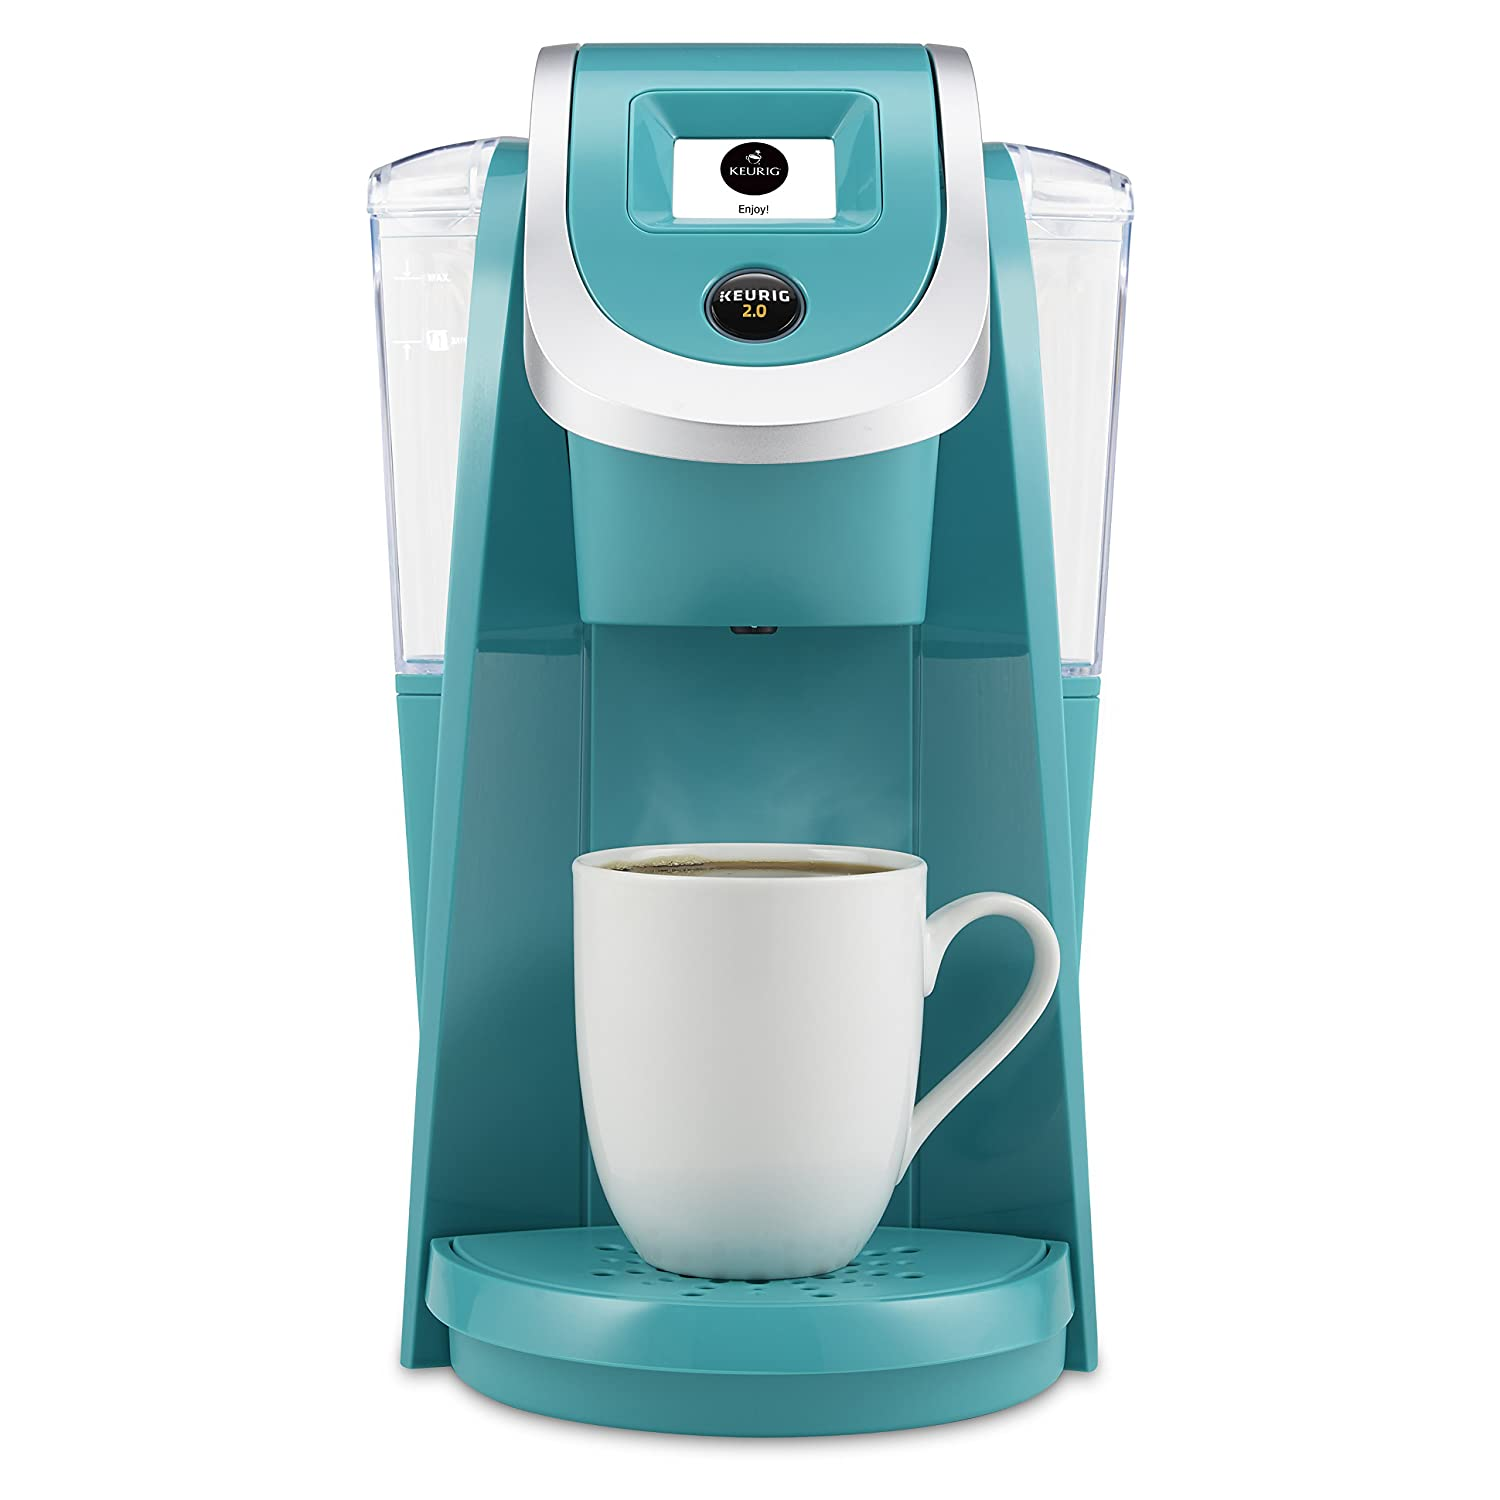 Keurig K250 2.0 Brewing System, Turquoise Discontinued